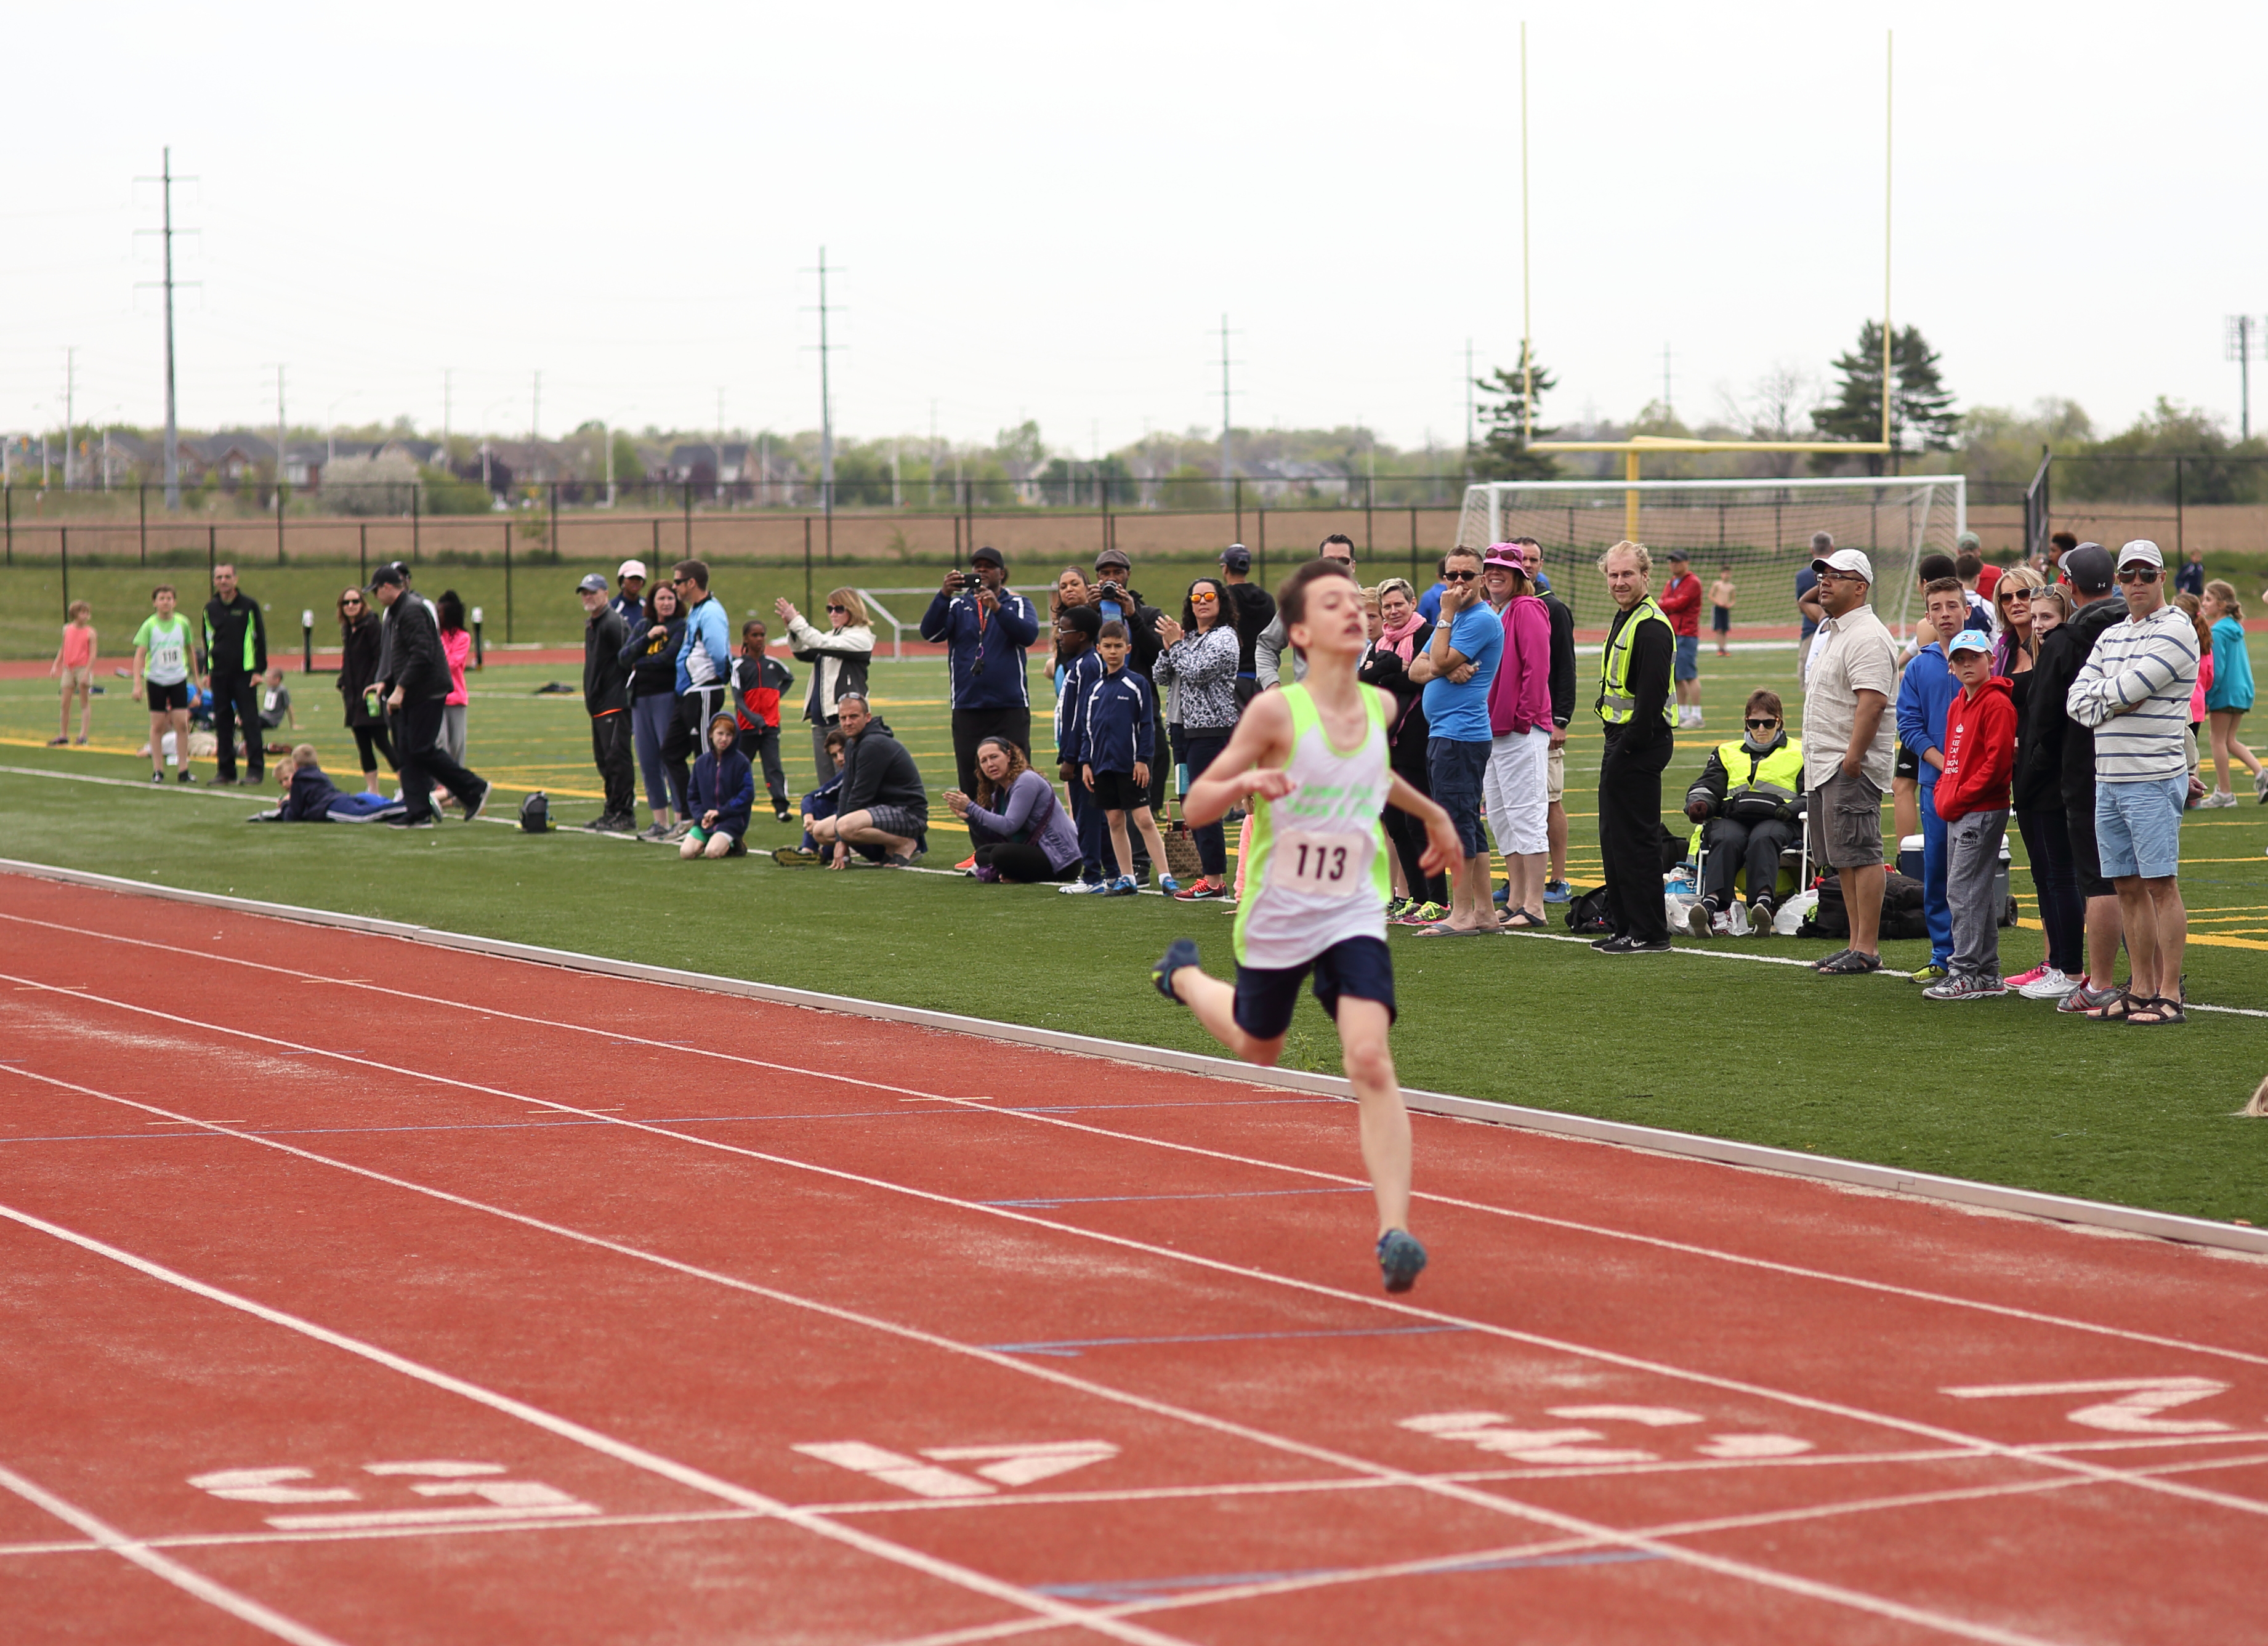 vermont hershey track meet results 2015